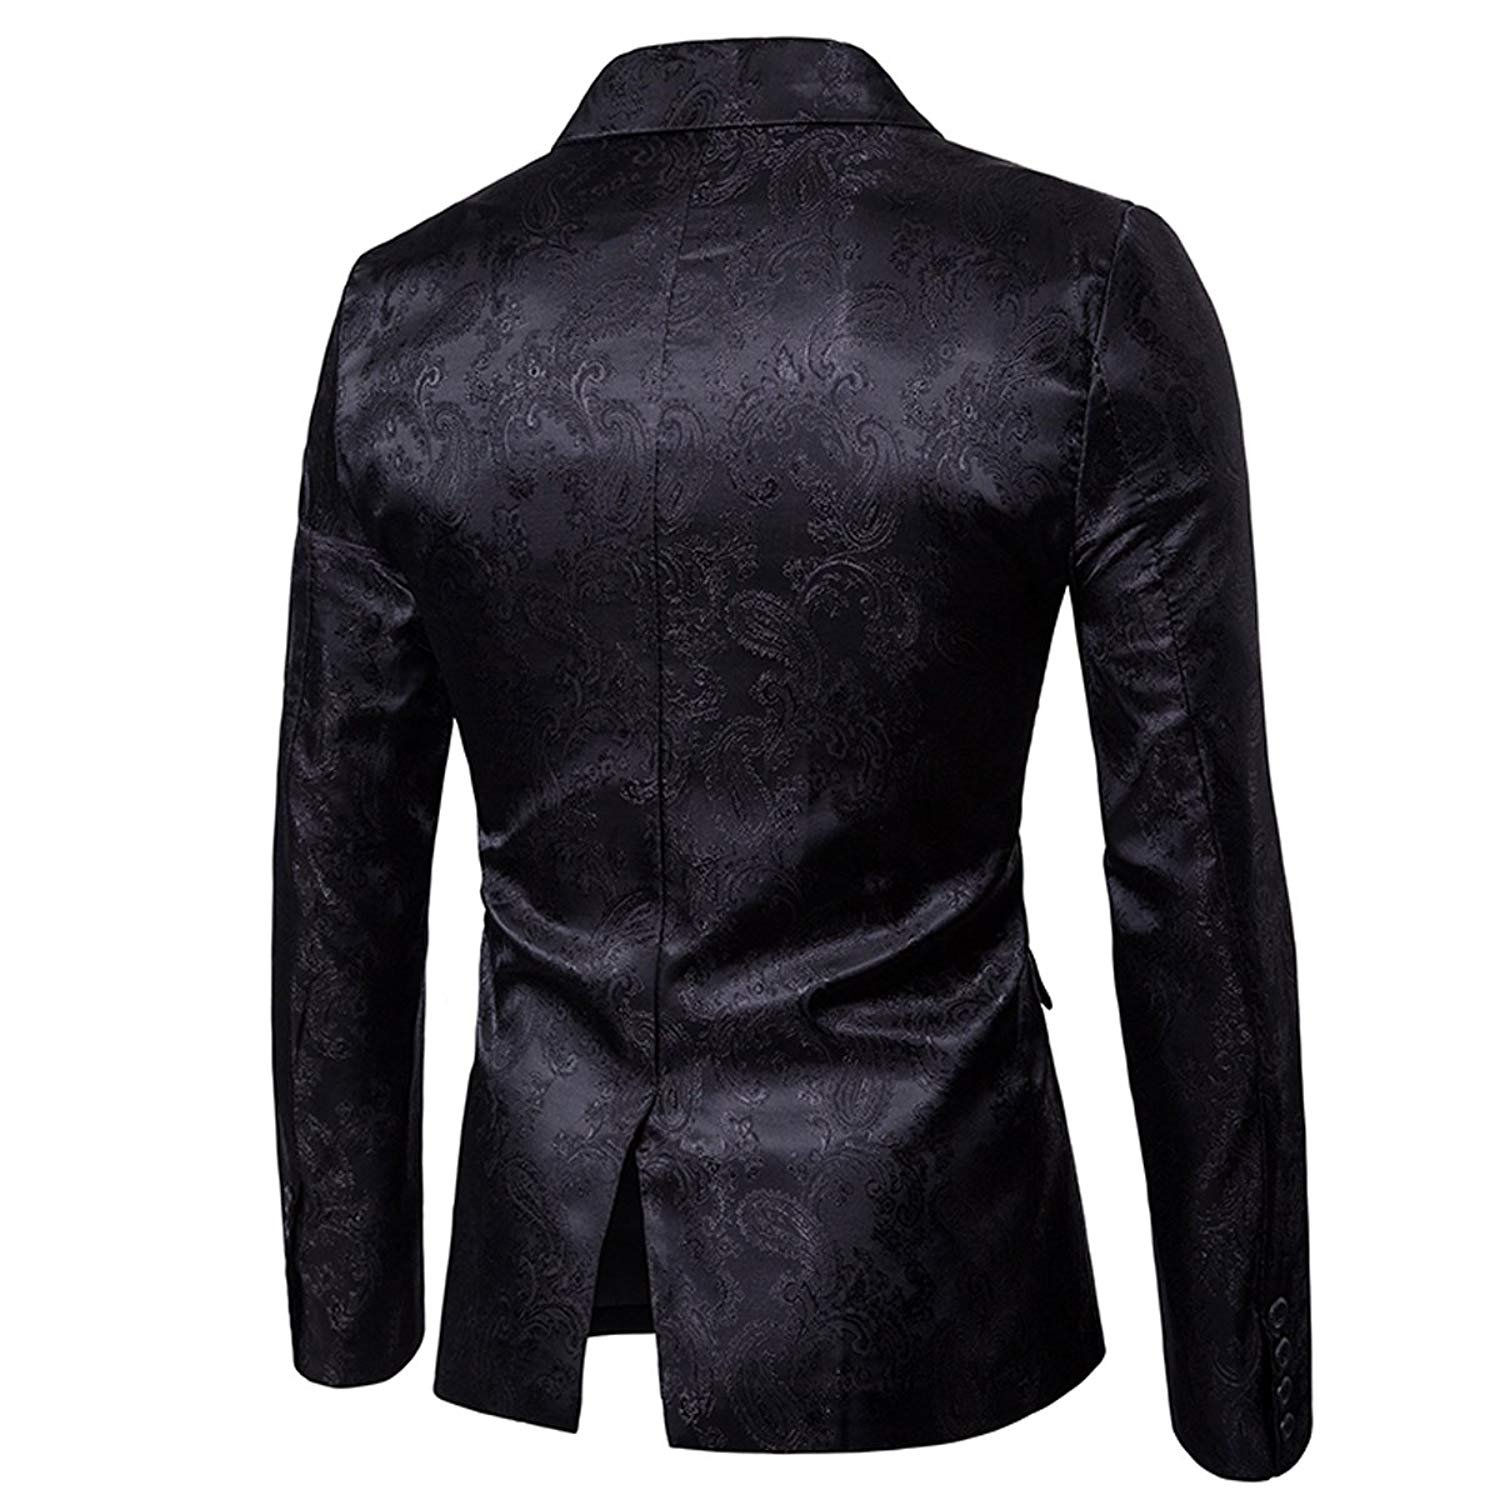 - MAGE MALE Men's Floral Floral Floral Luxury Party Dress Suit Stylish Dinner Jacket Wedding Blazer Prom Tuxedo c35e27